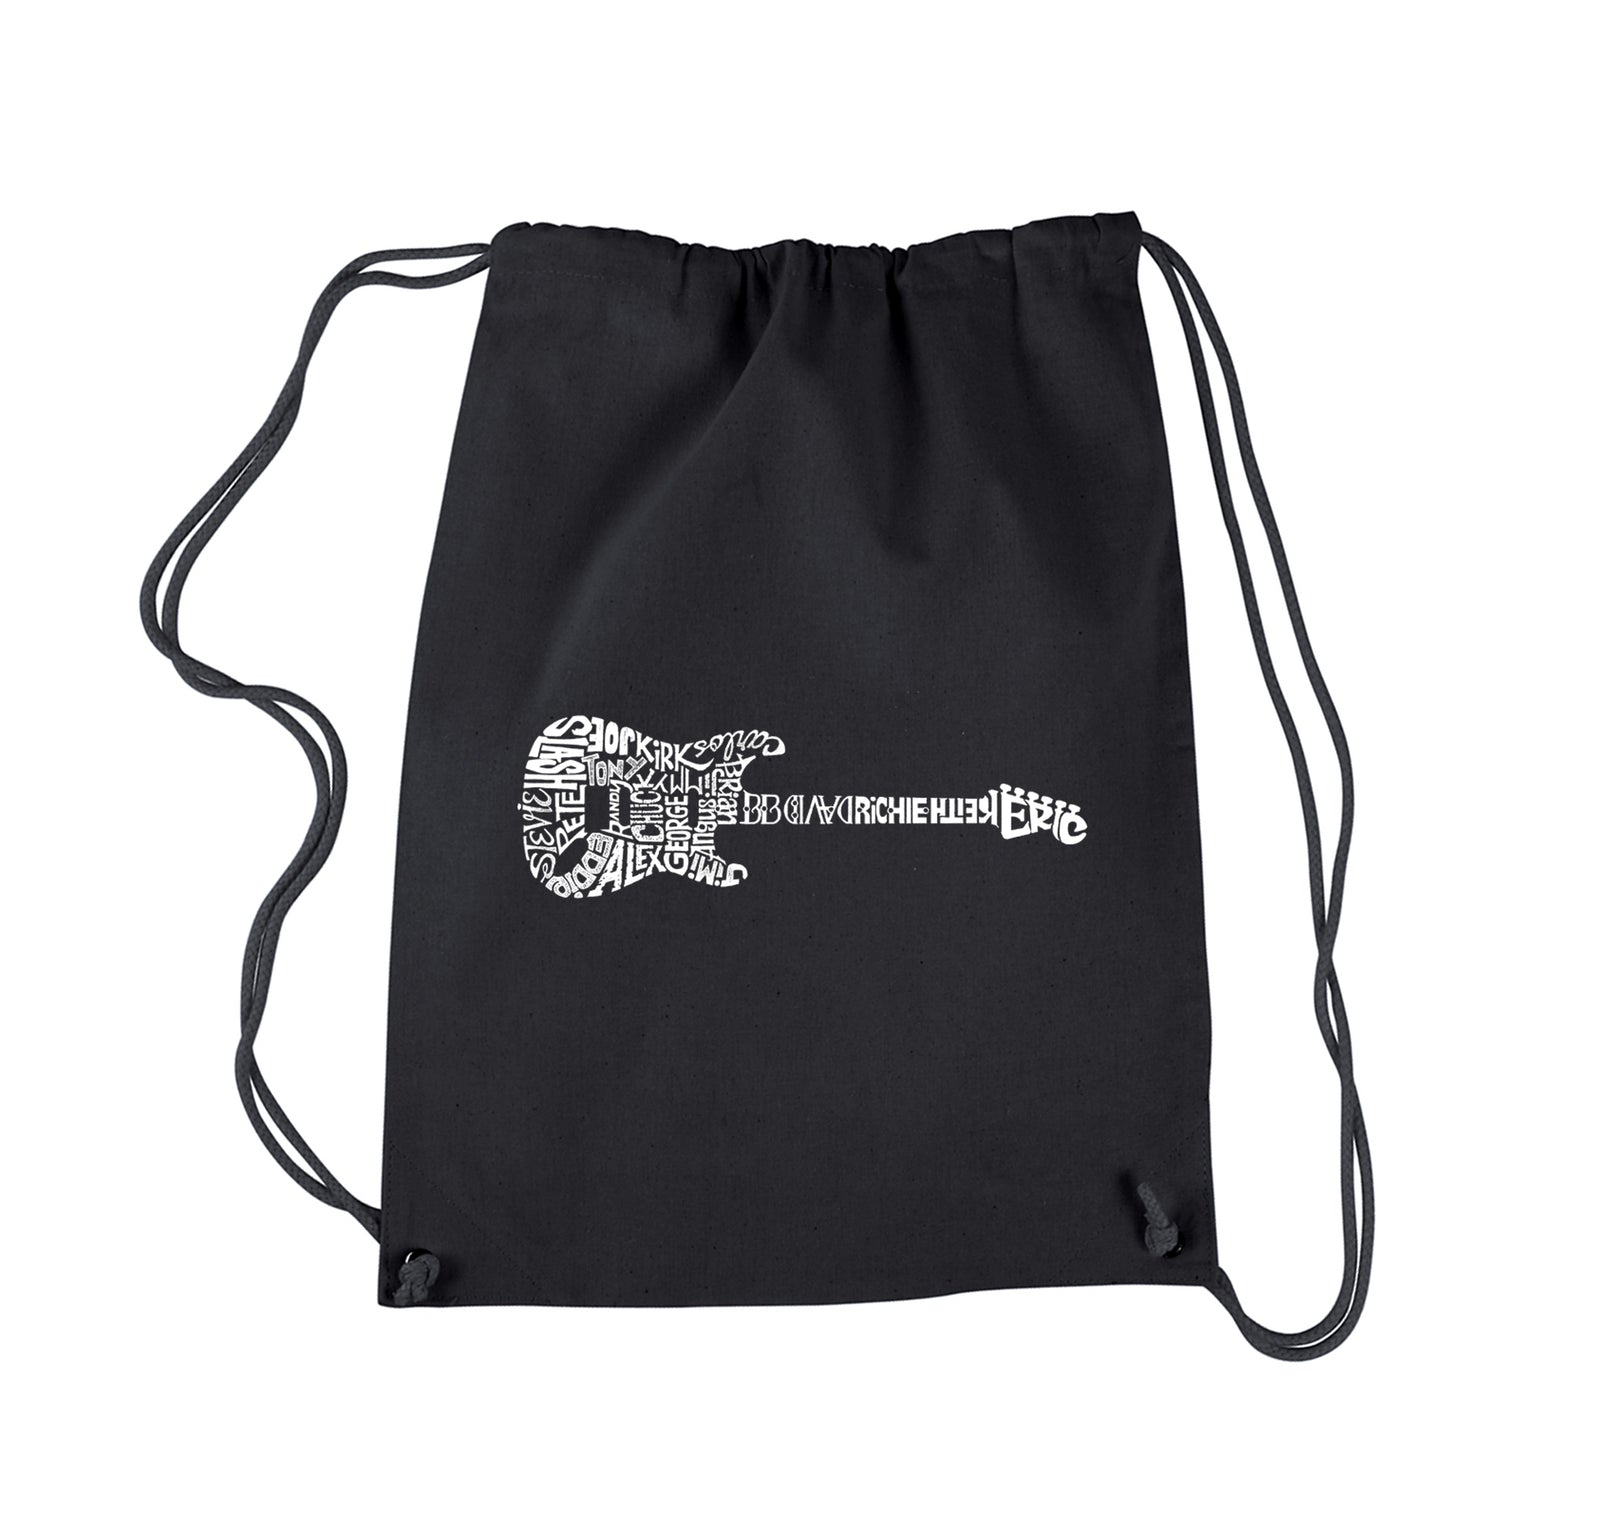 Los Angeles Pop Art Drawstring Backpack - Rock Guitar